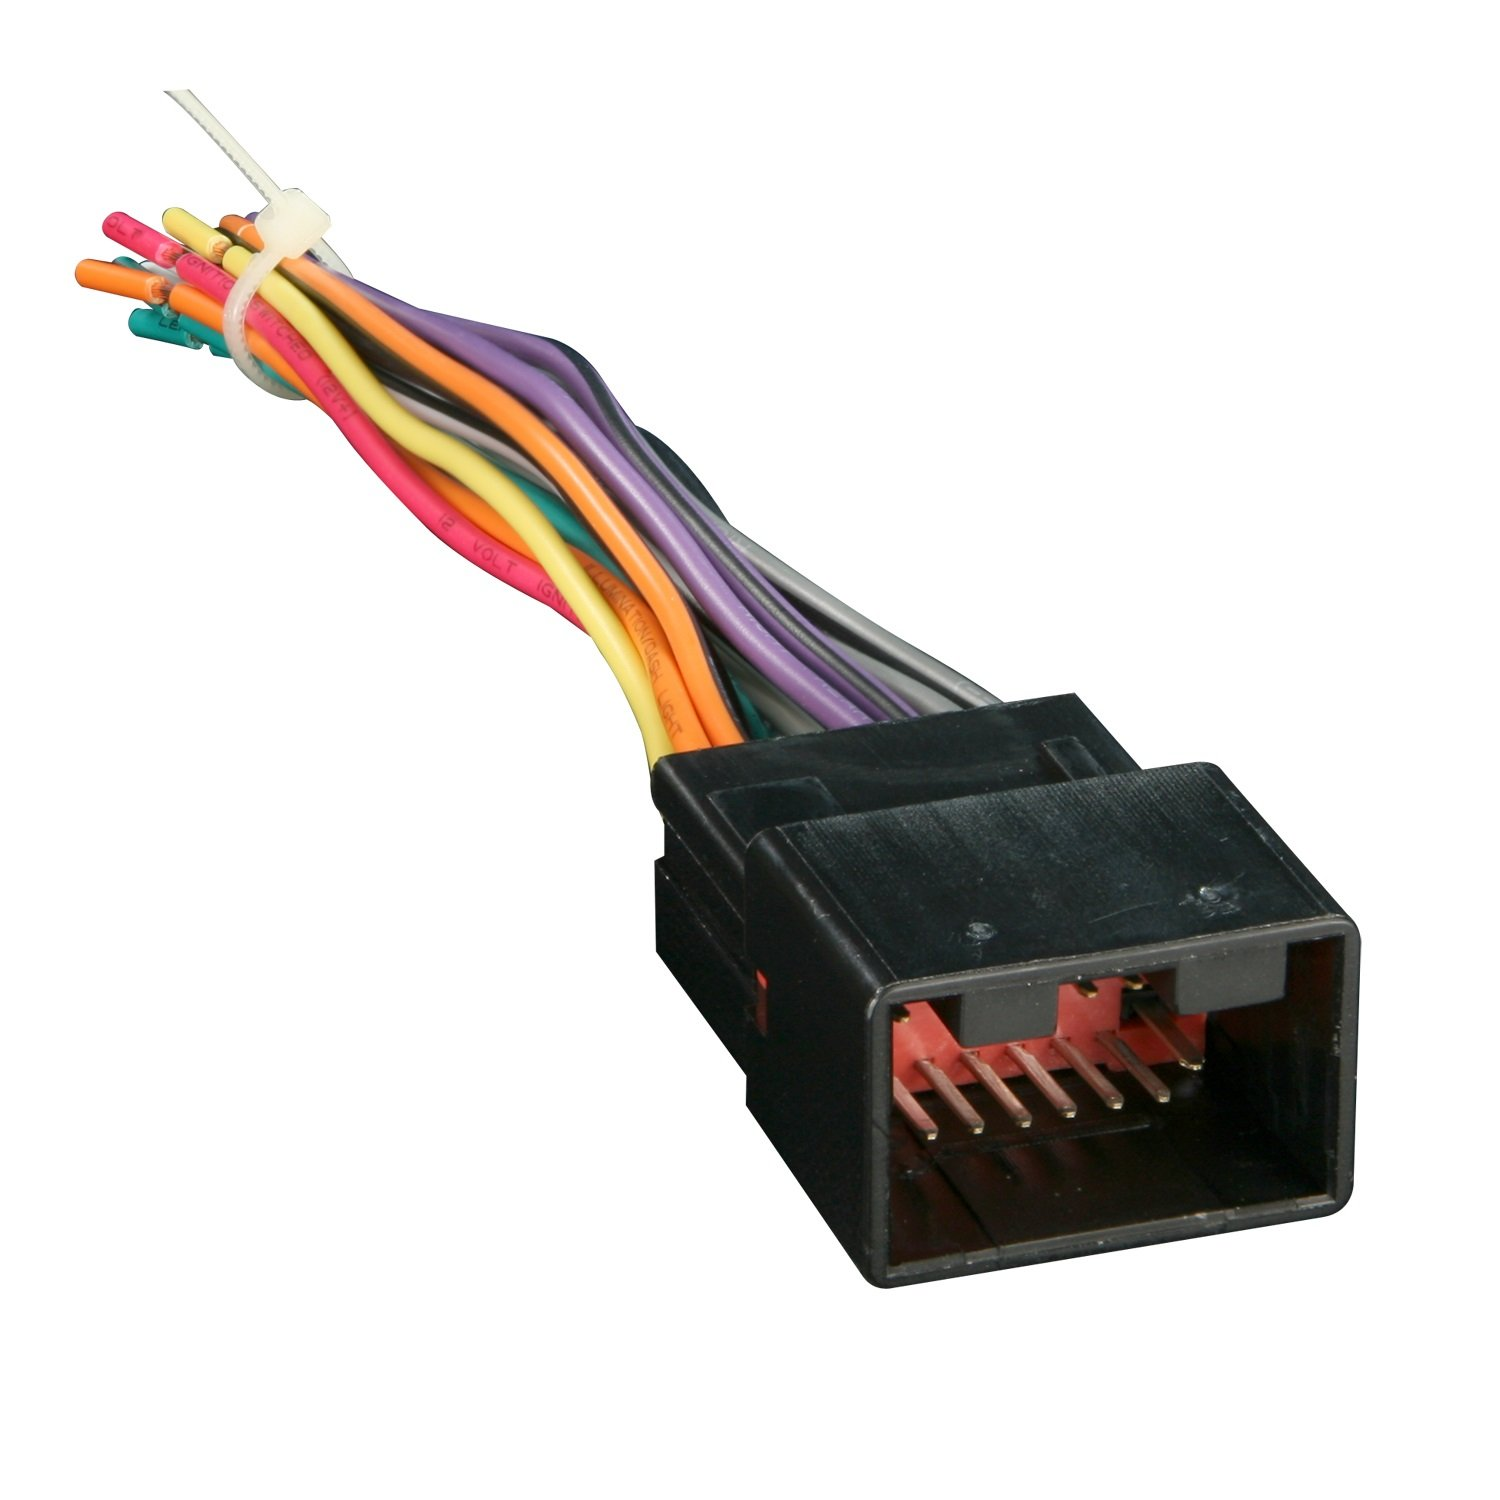 61X4UocRDeL._SL1500_ amazon com wiring harnesses electrical automotive wiring harness parts at readyjetset.co